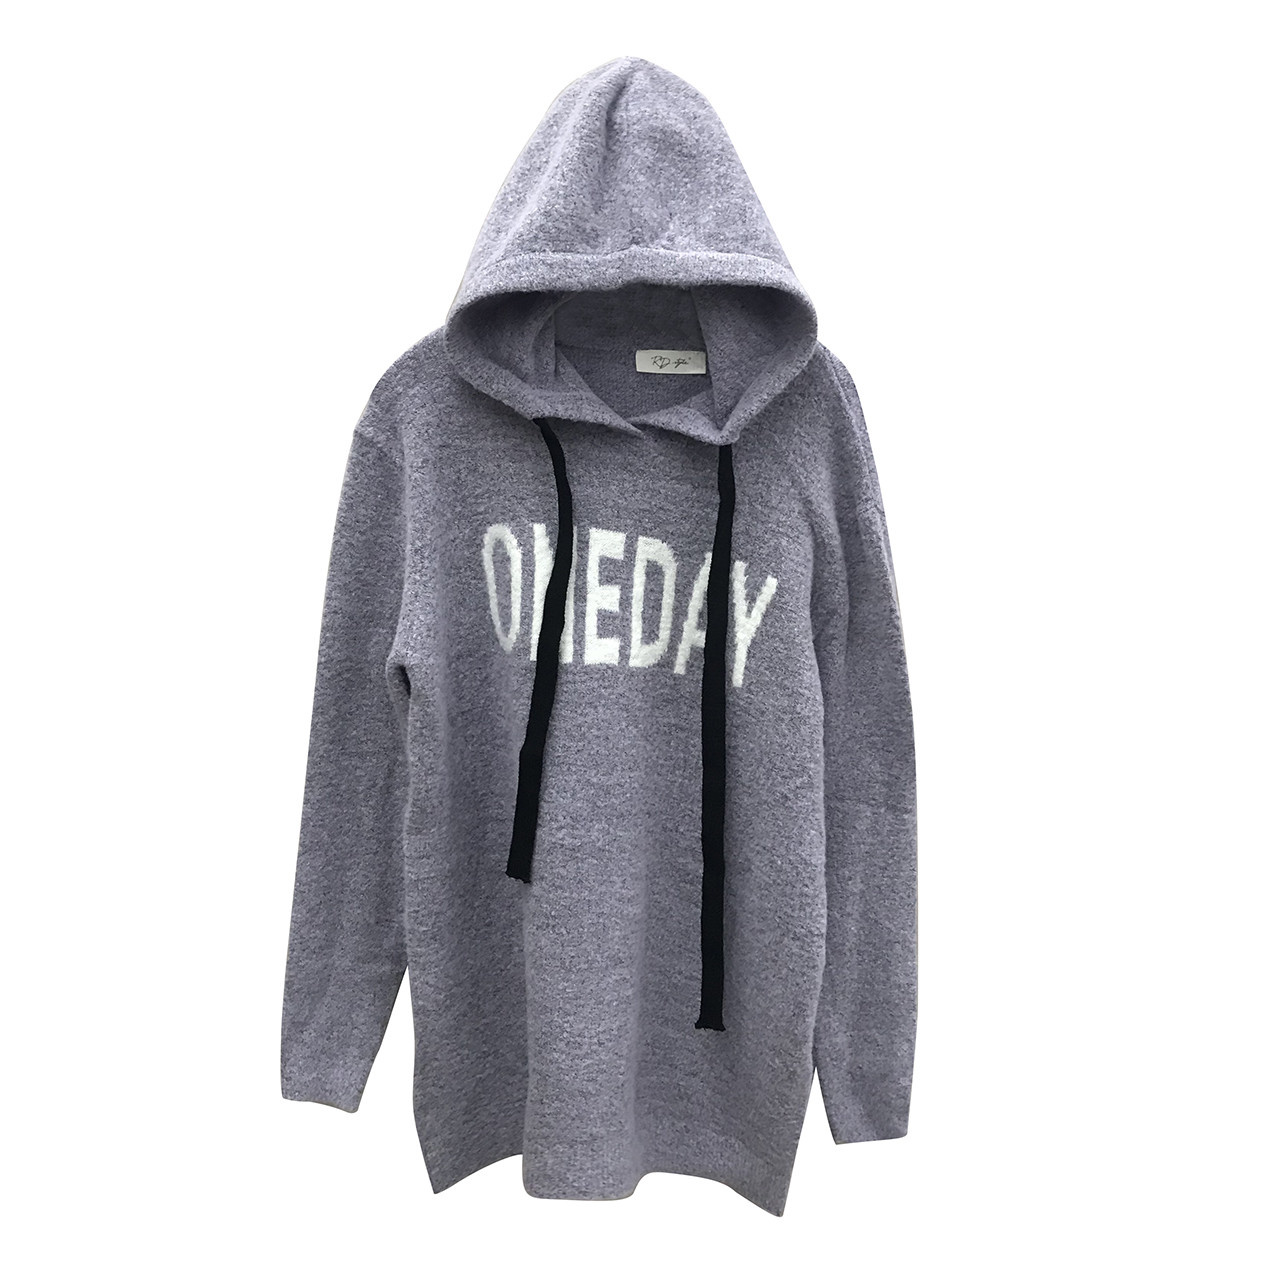 ONEDAY Knit Hoodie